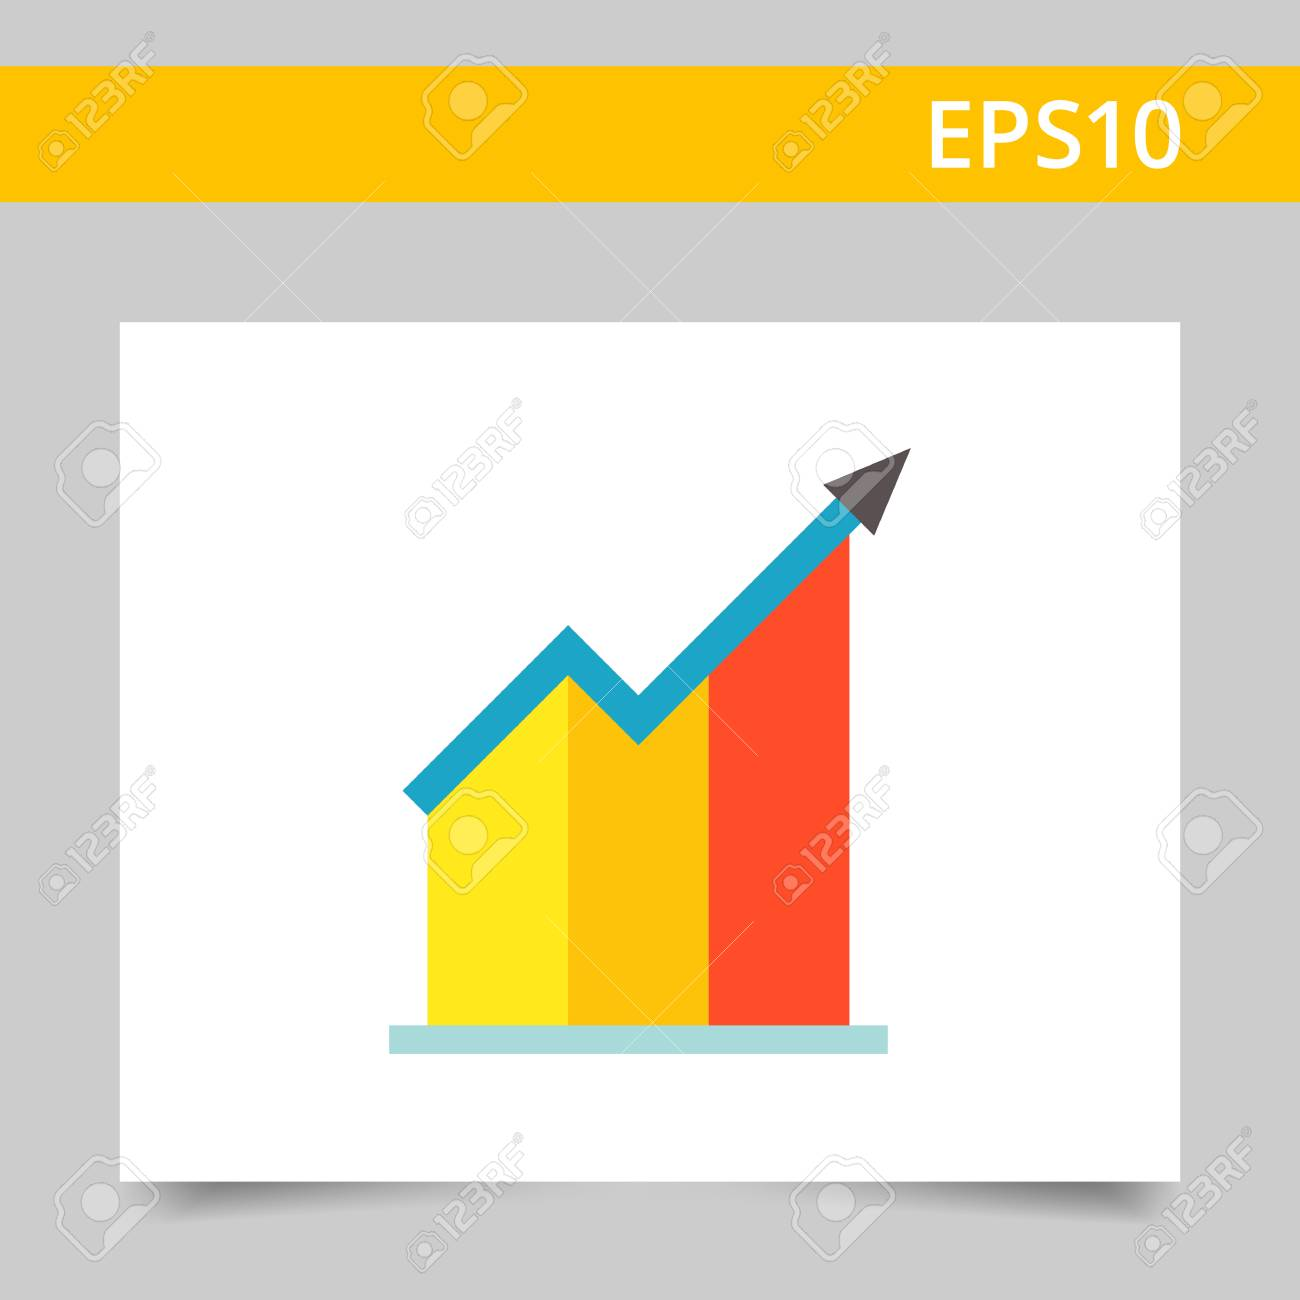 vector icon of growing bar chart with arrow royalty free cliparts